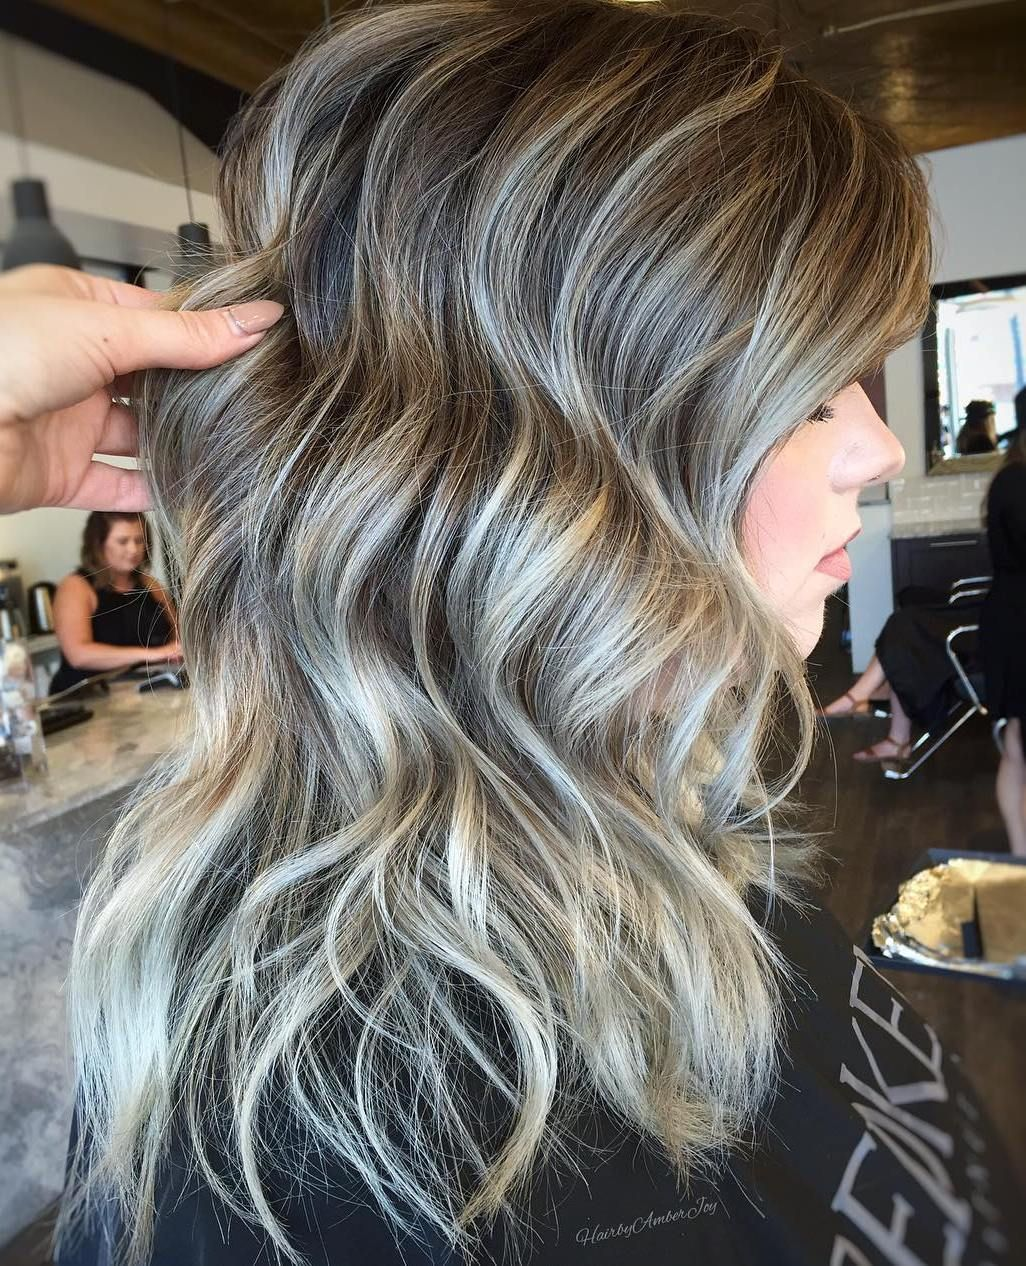 Grey Brown Hair Improves When You Divide The Two Shades As The Main Color And Highlights You C Gray Hair Highlights Blending Gray Hair Transition To Gray Hair